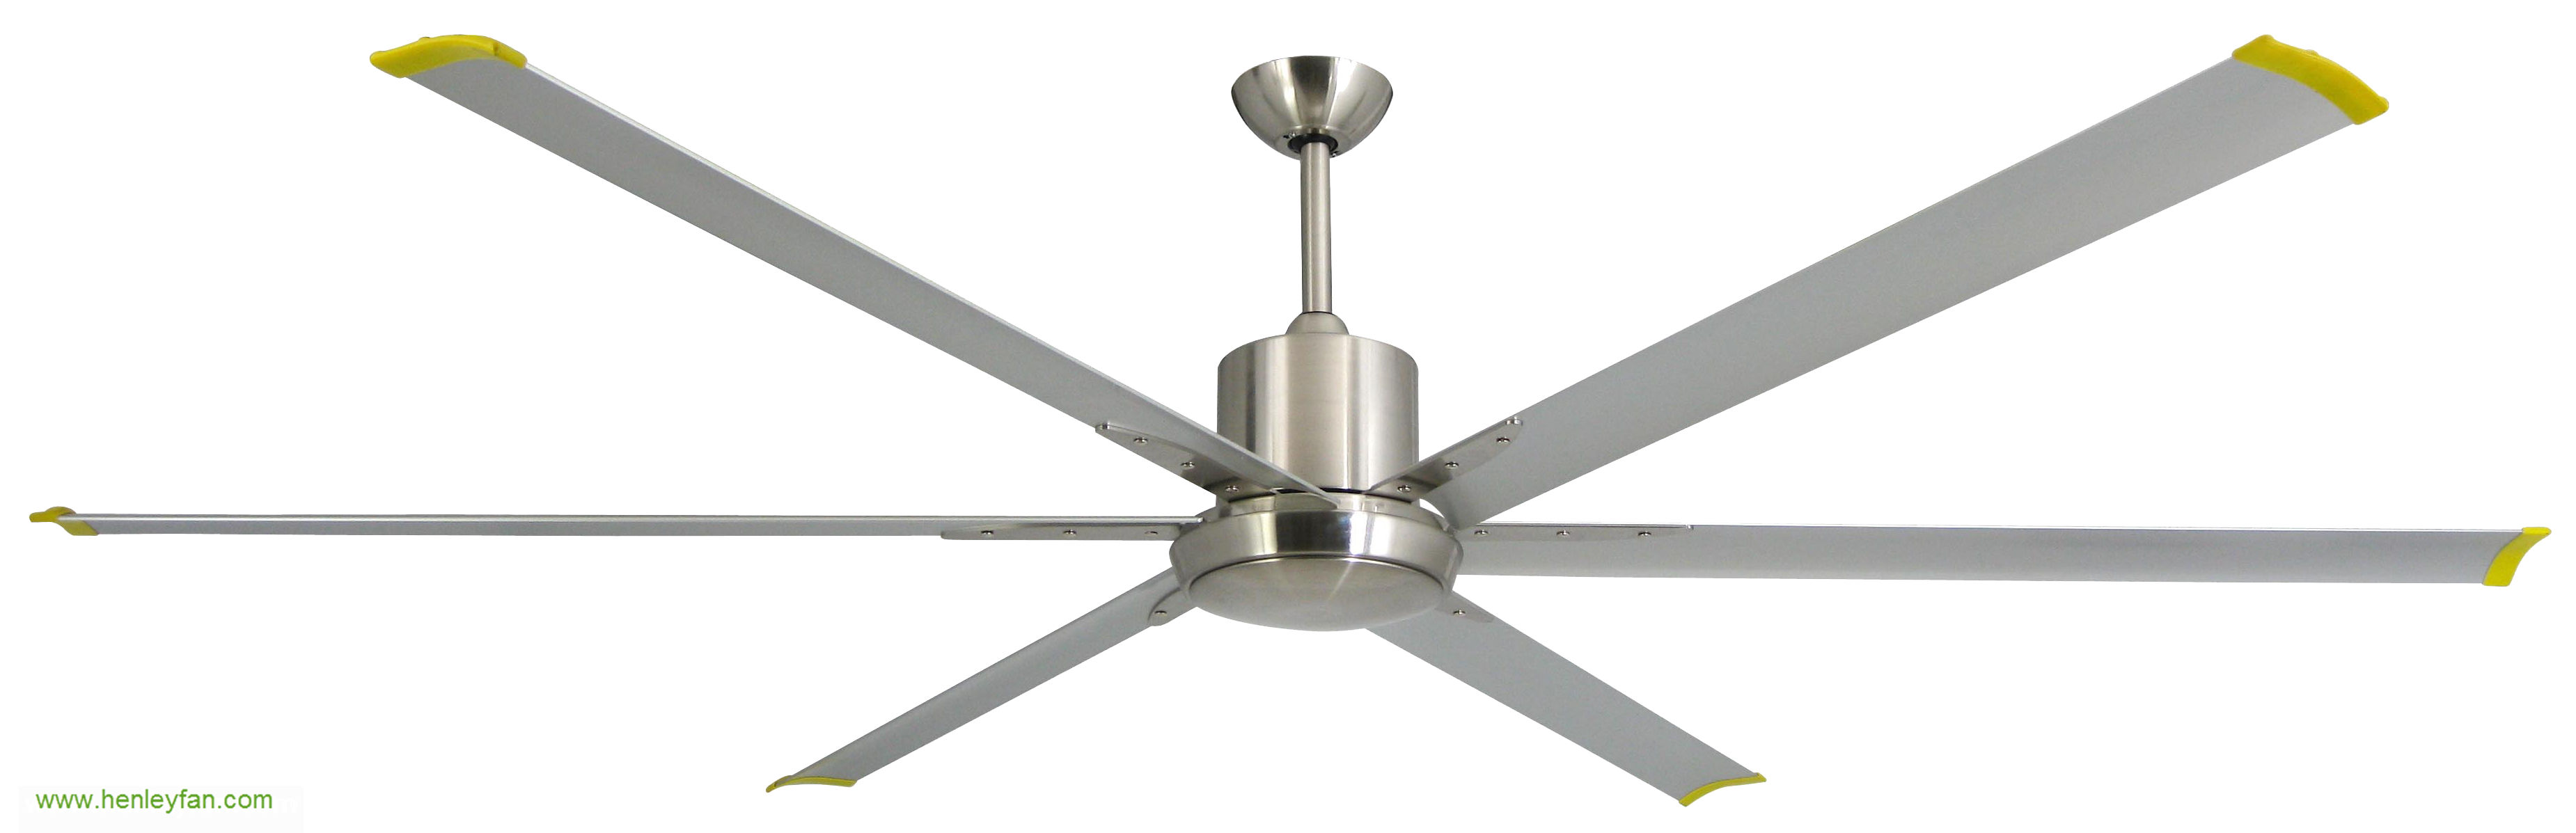 Oversized Ceiling Fans Mrken Helicopter 6he84 Very Large Low Energy Dc Ceiling